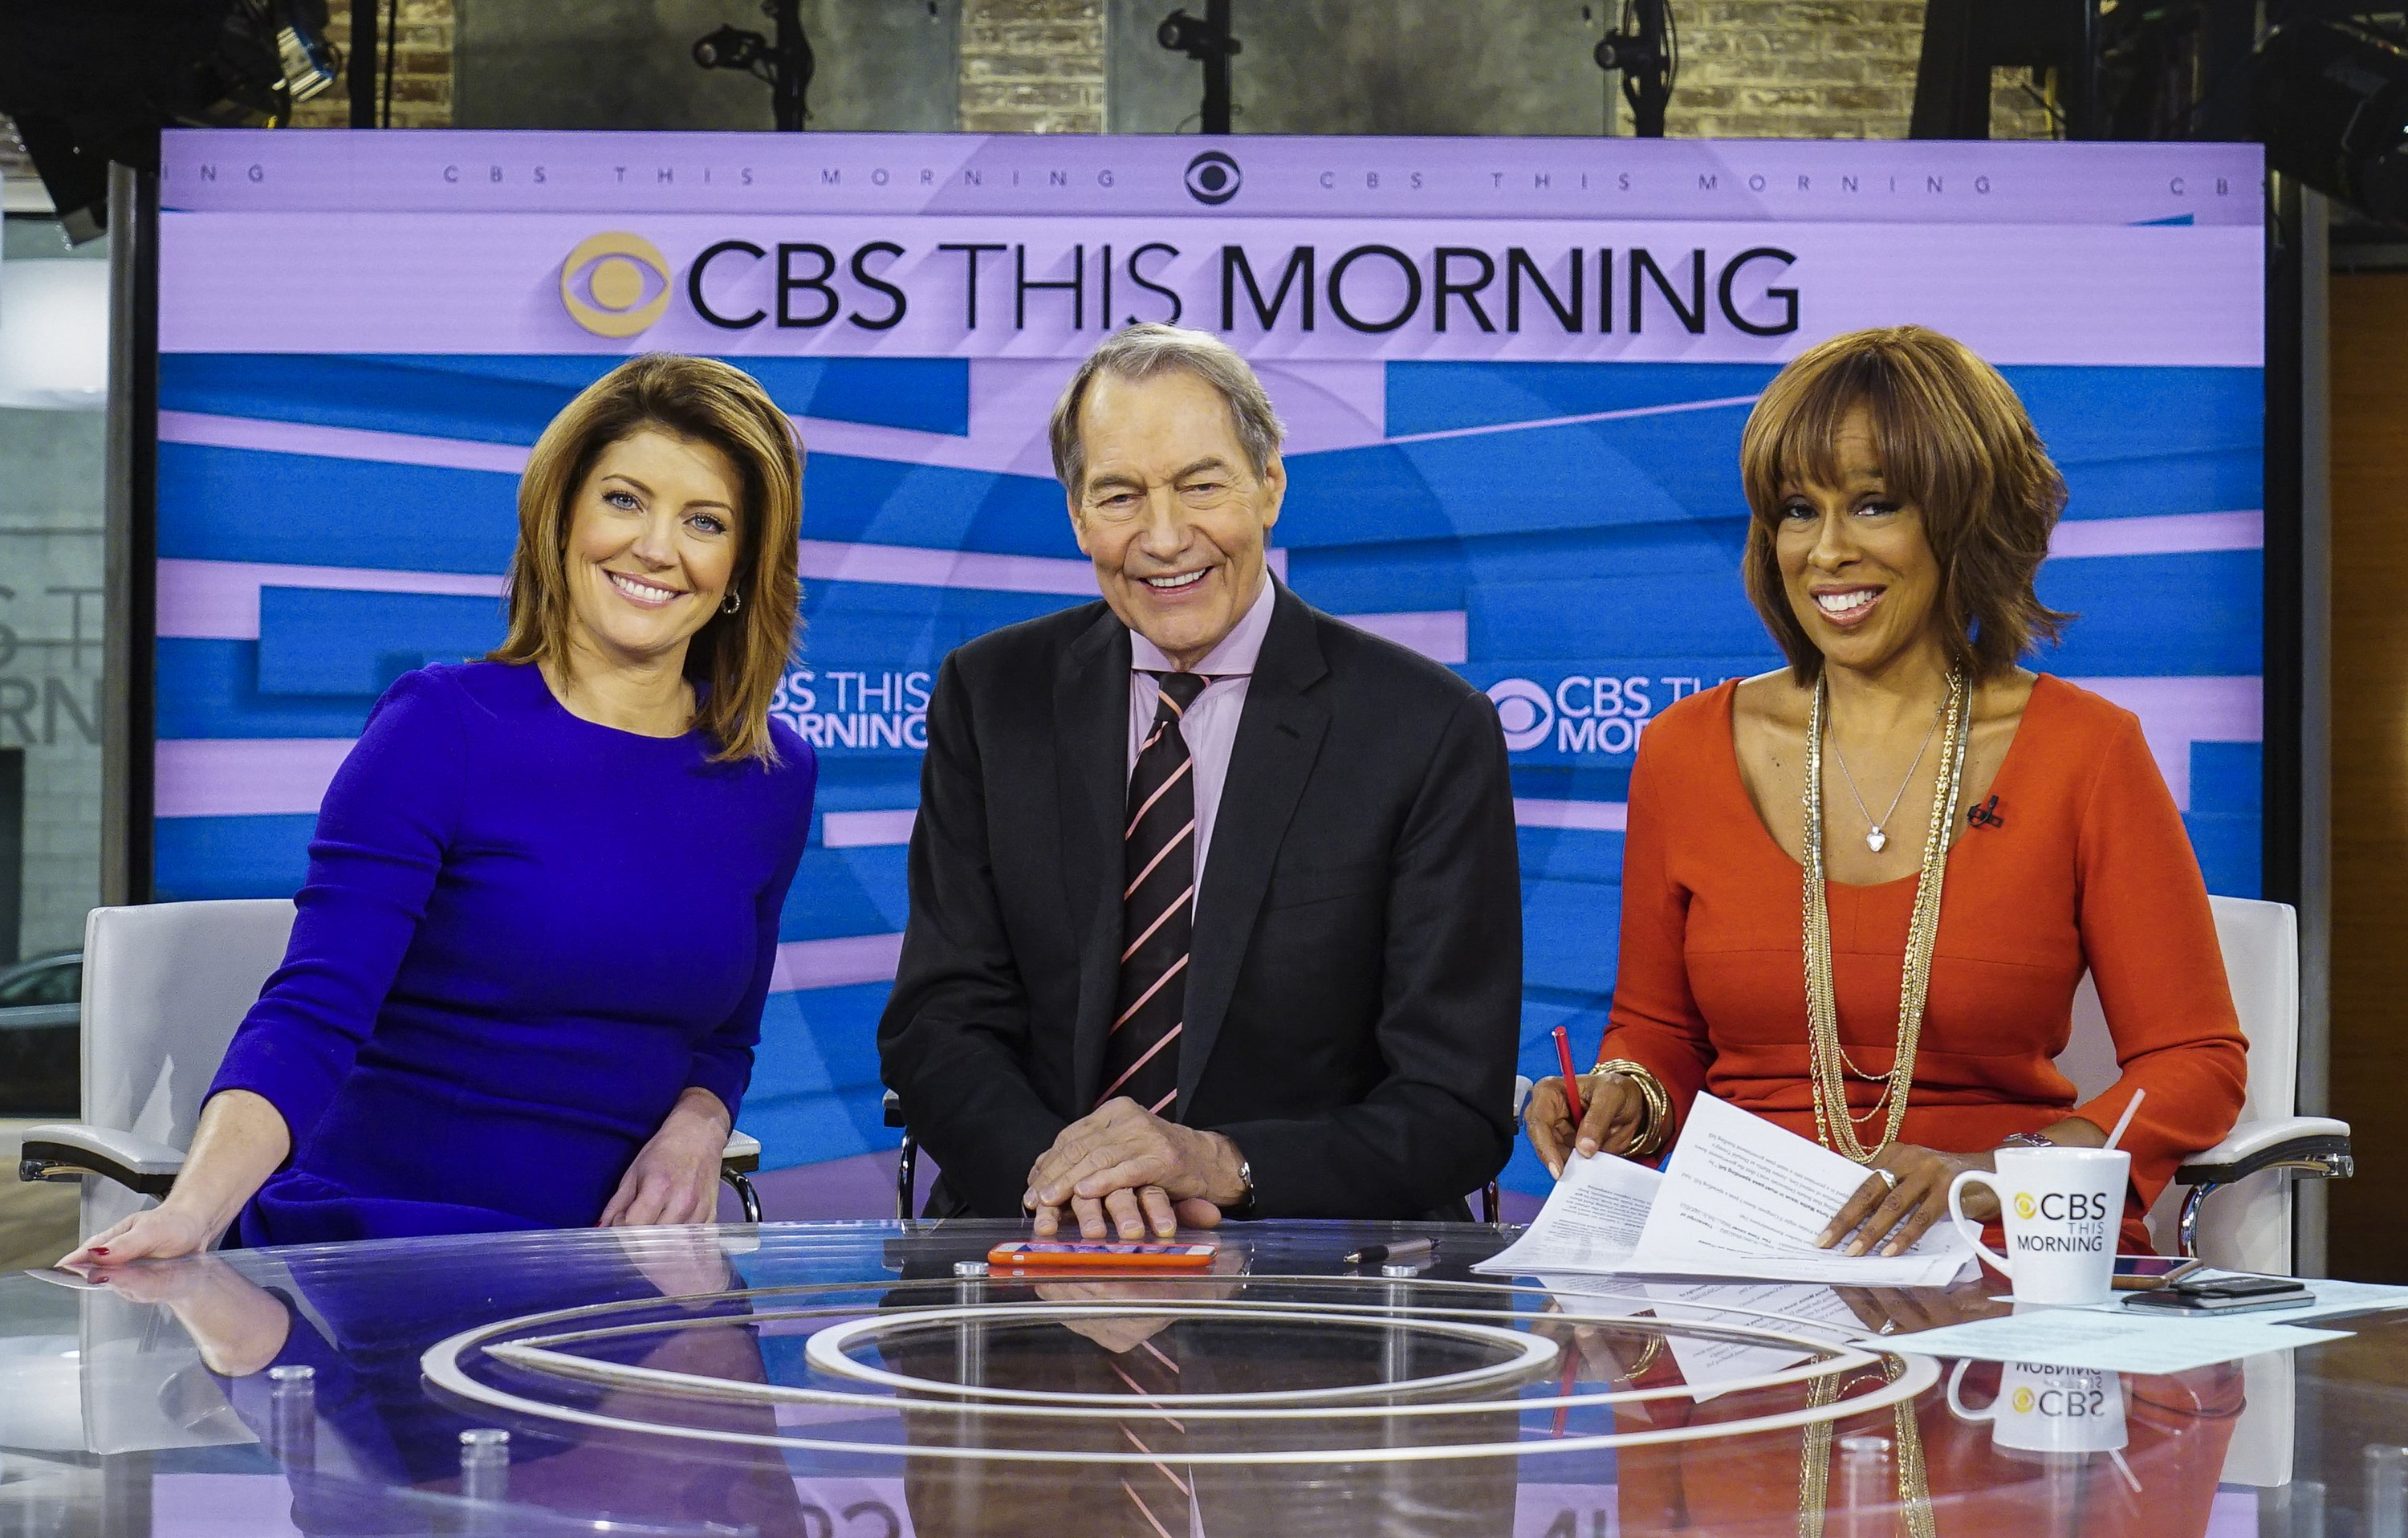 Cbs This Morning Marks 5 Years Of Re Imagining The News